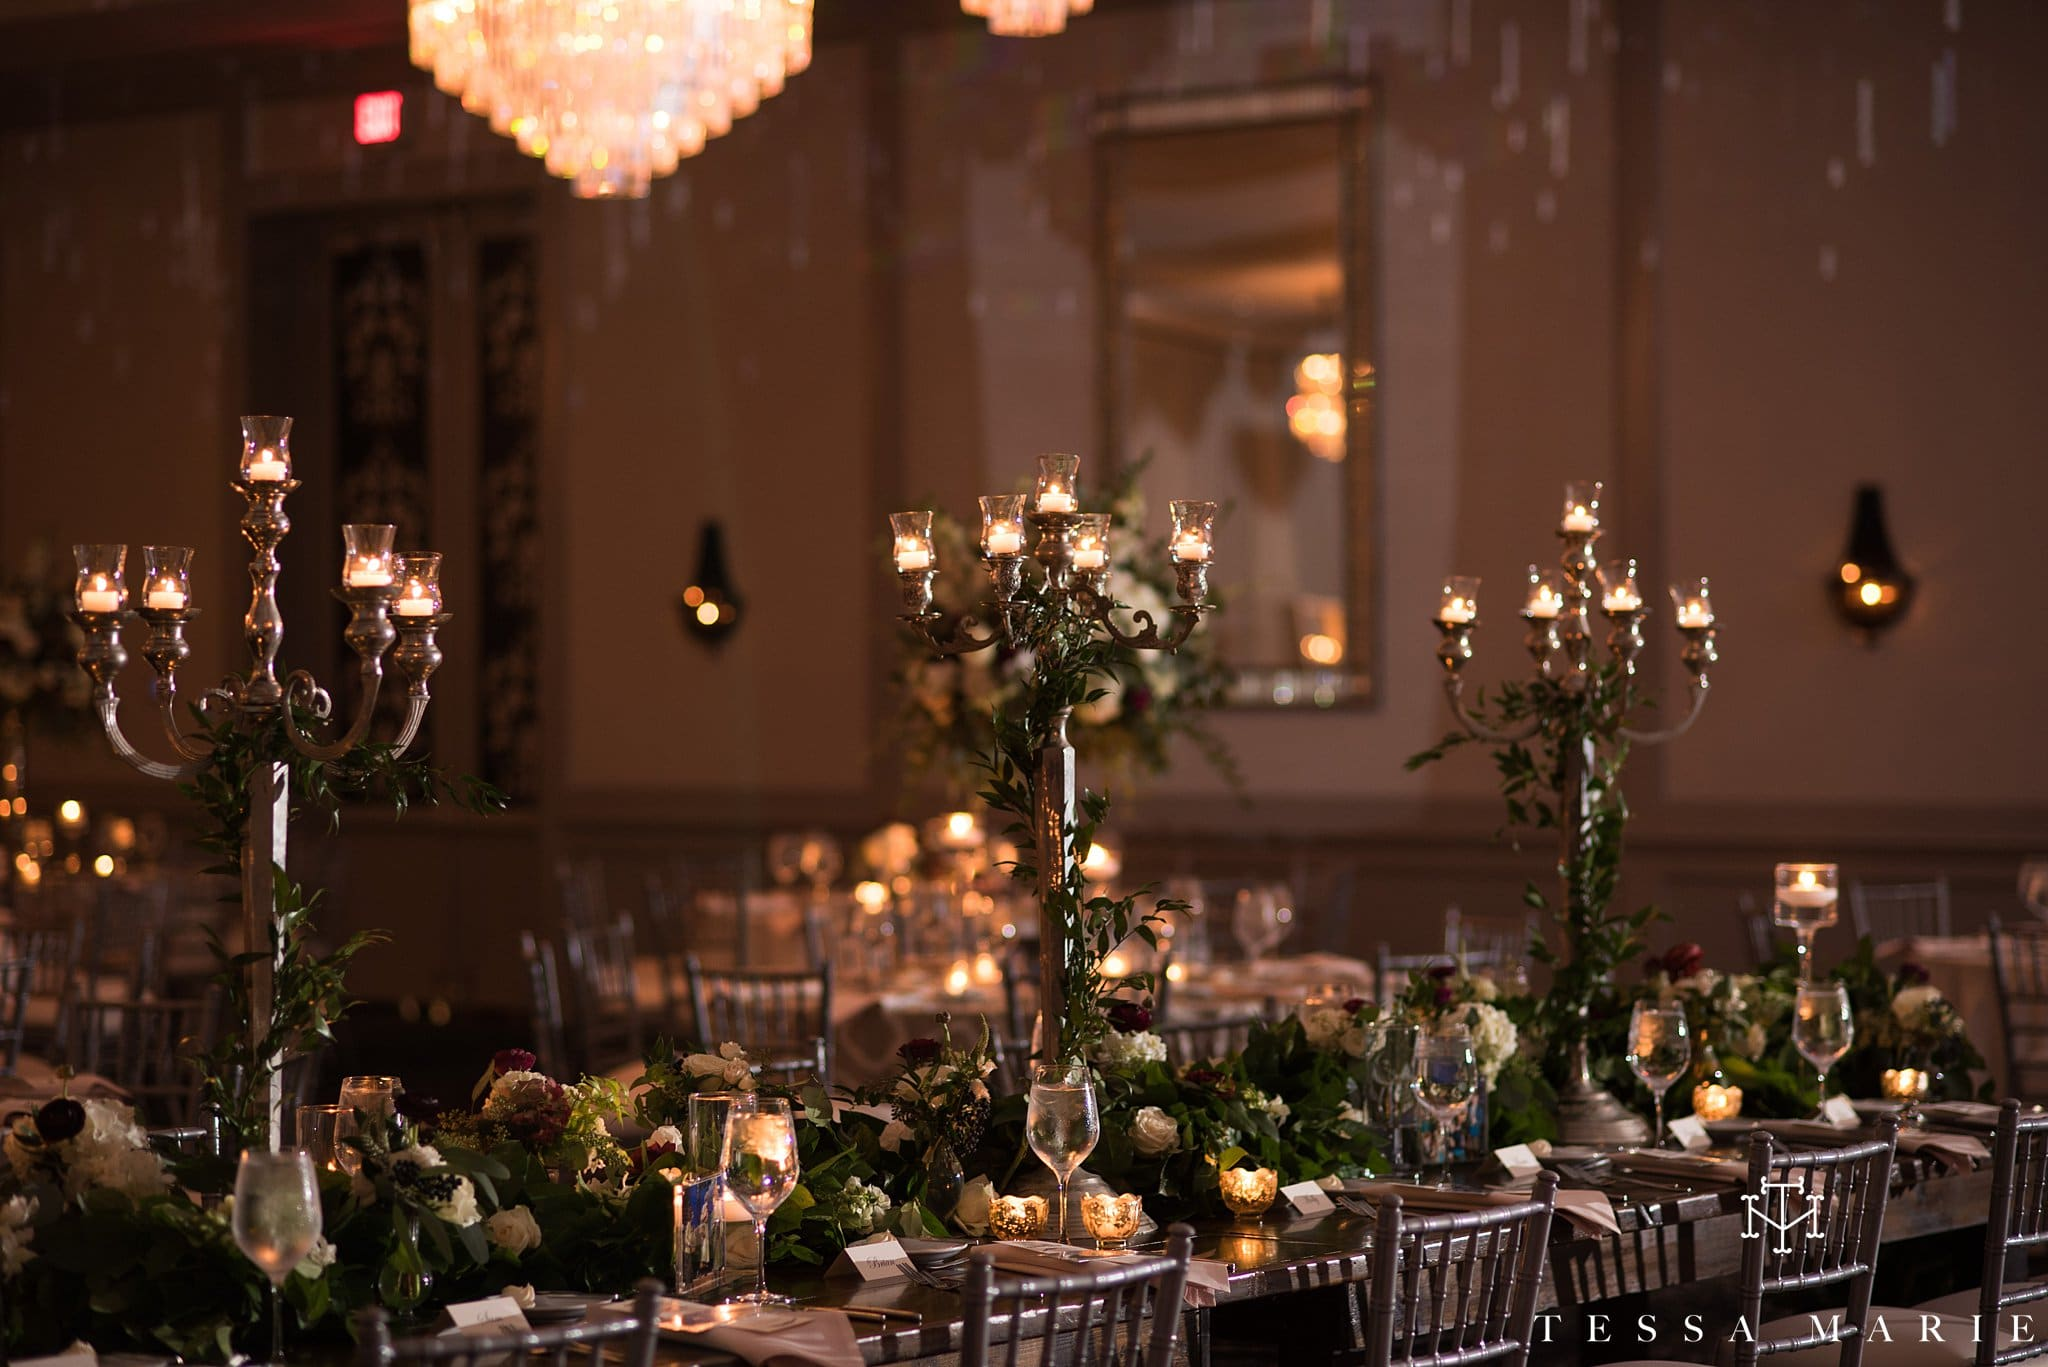 tessa_marie_weddings_estate_wedding_flourish_wedding_legendary_events_wedding_angels_bride_groom_wedding_Day_rainy_wedding_day_fall_october_wedding_atlantas_best_wedding_professionals_0677.jpg